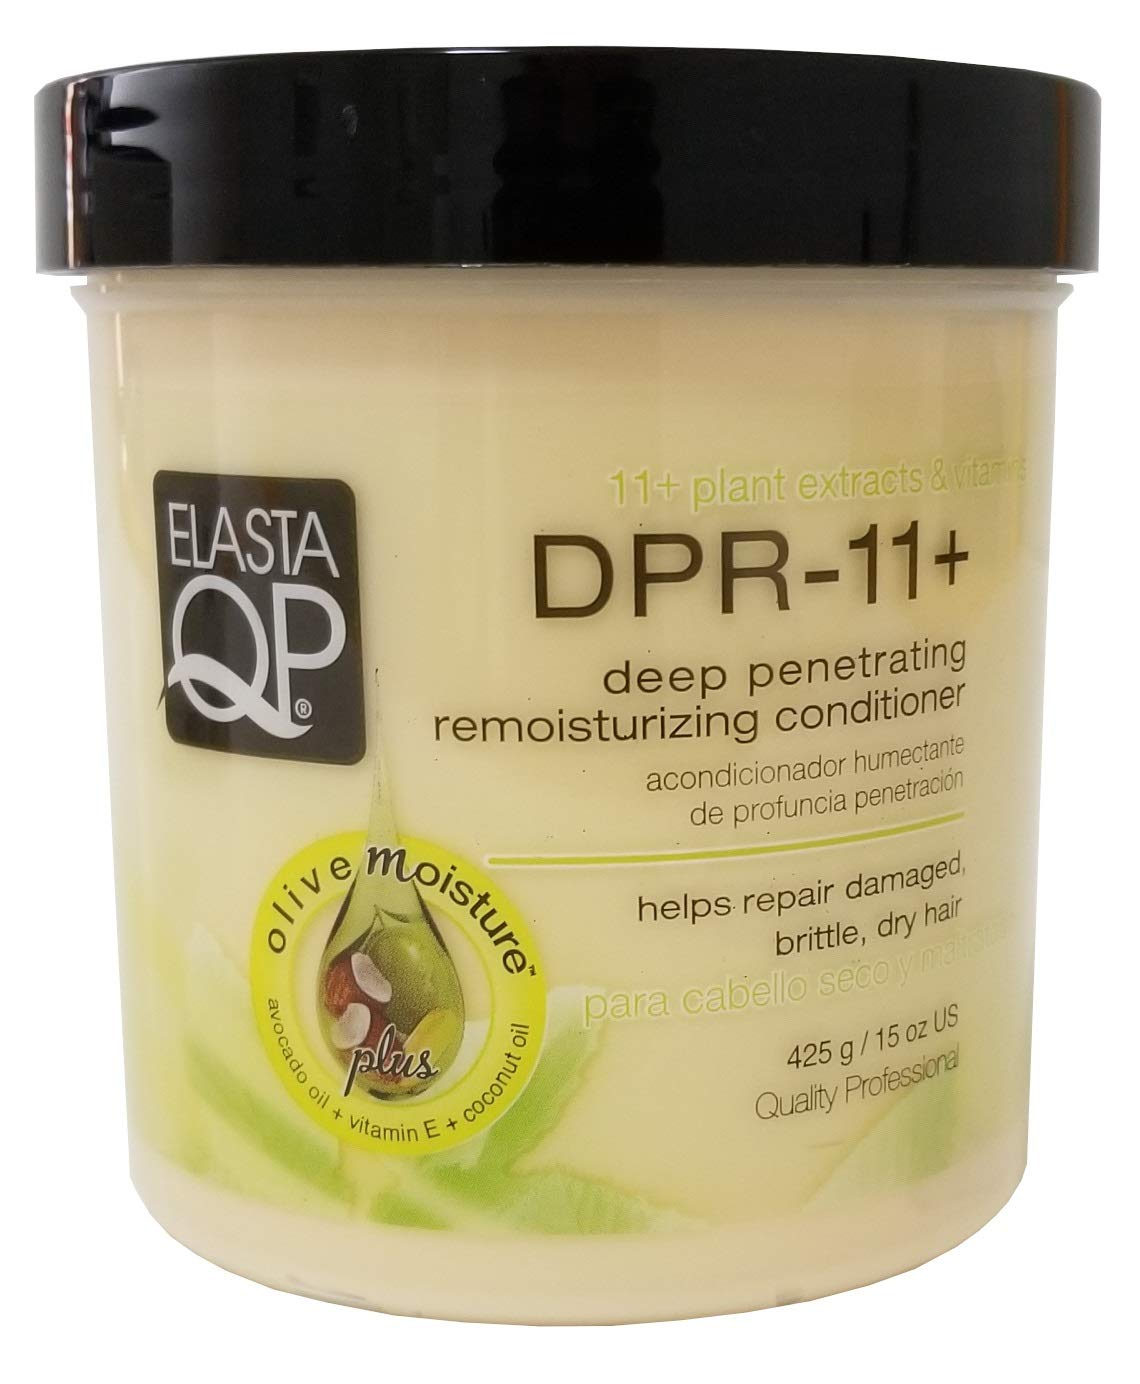 Elasta QP- Deep Penetrating Remoisturizing Conditioner 15oz